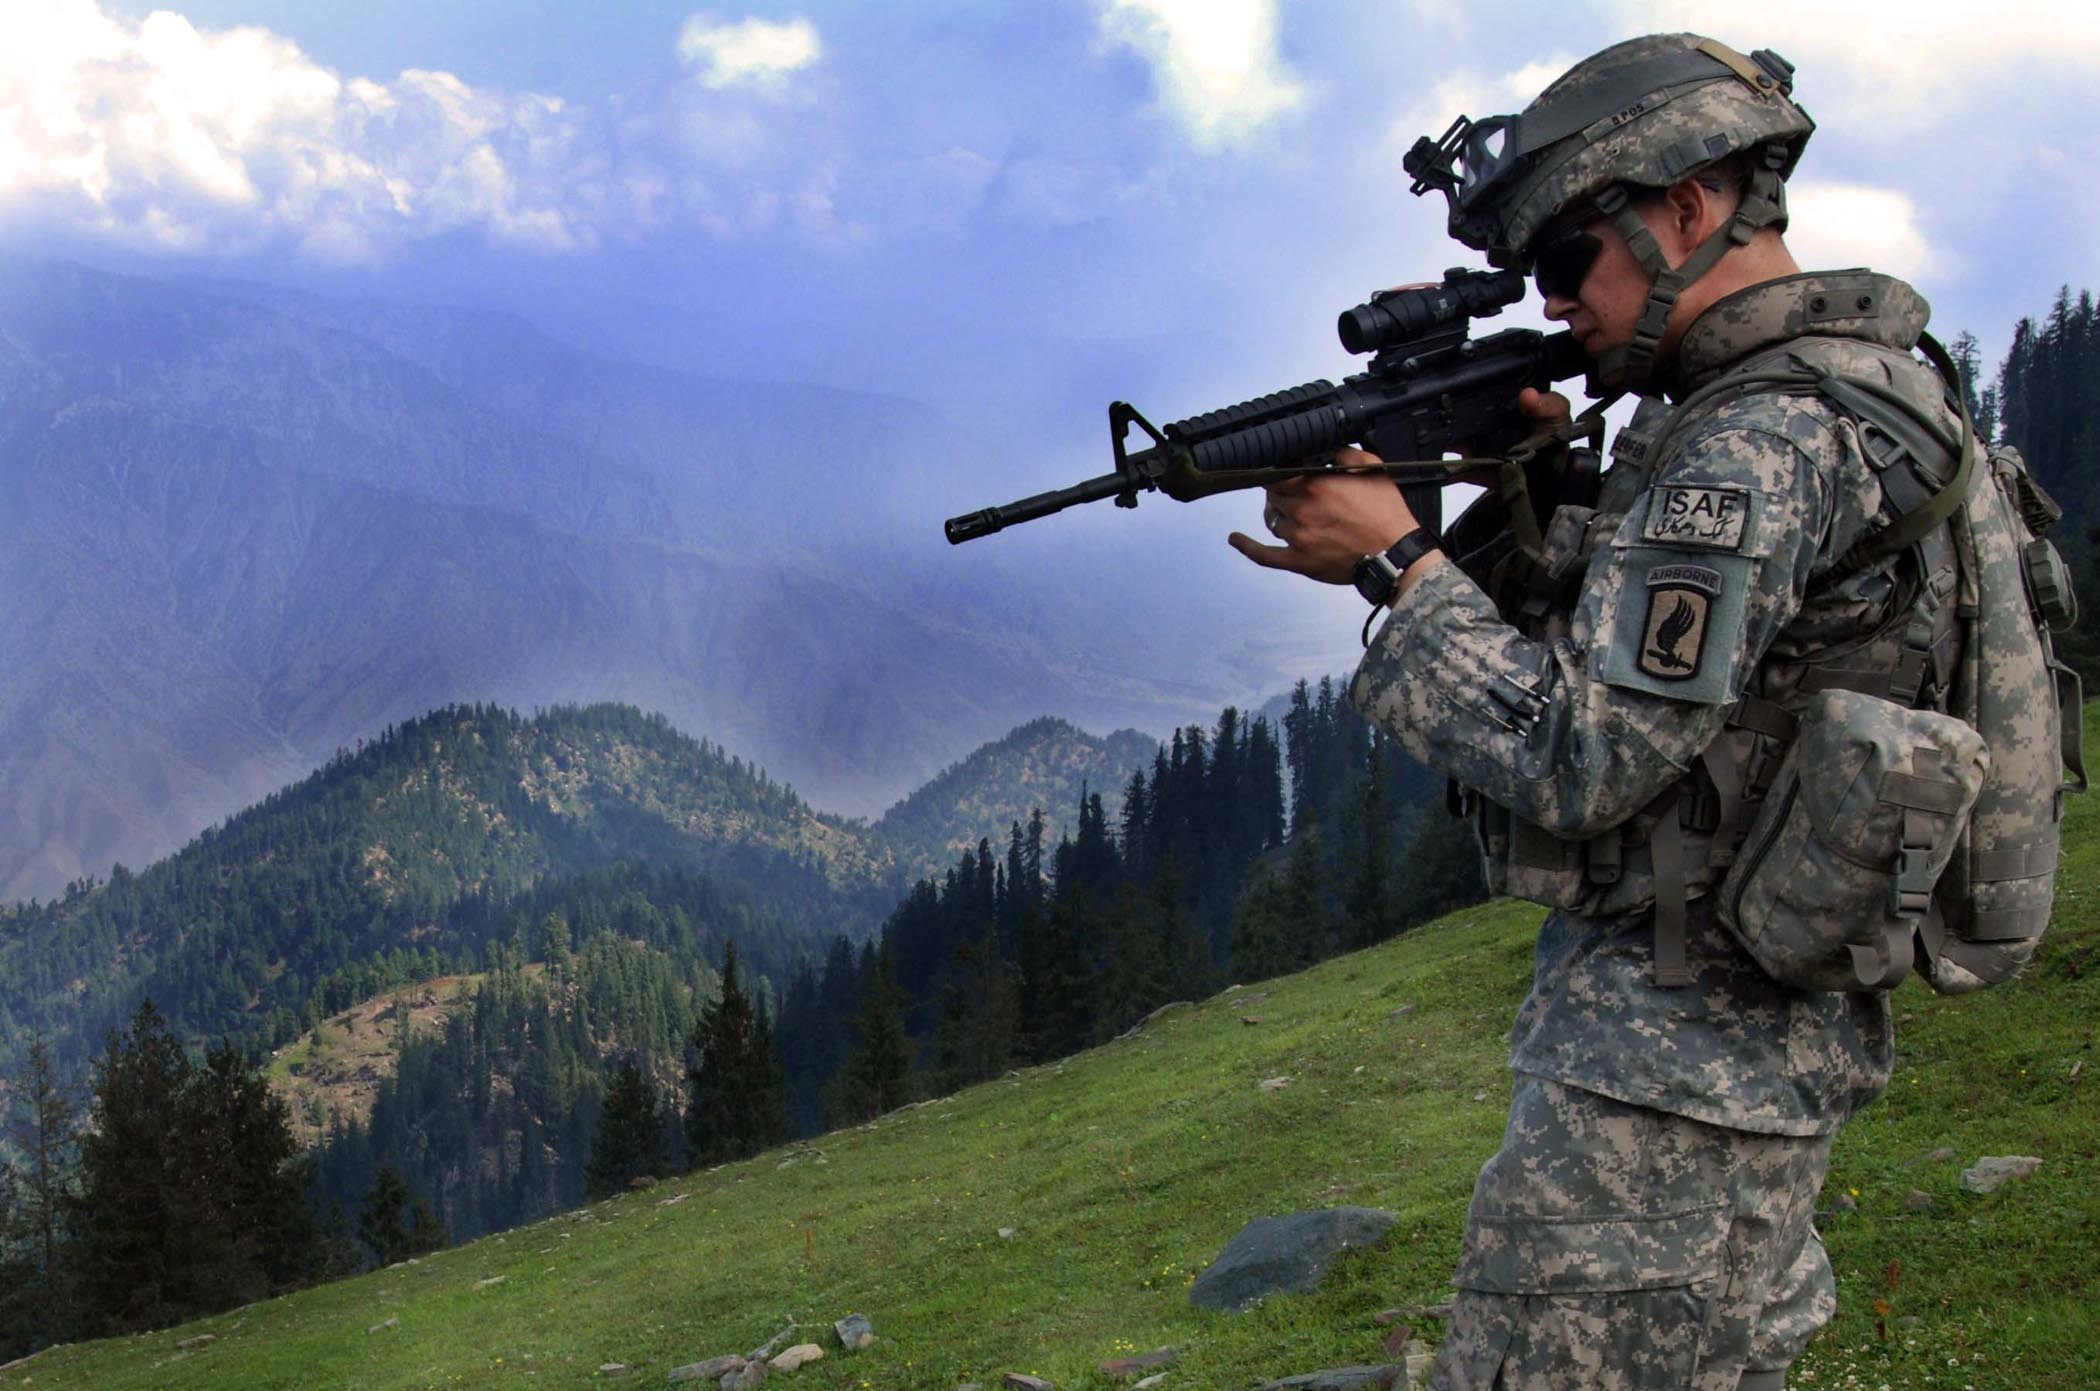 A U.S. Army soldier in Kunar province, Afghanistan, during Operation Saray in April 2006.